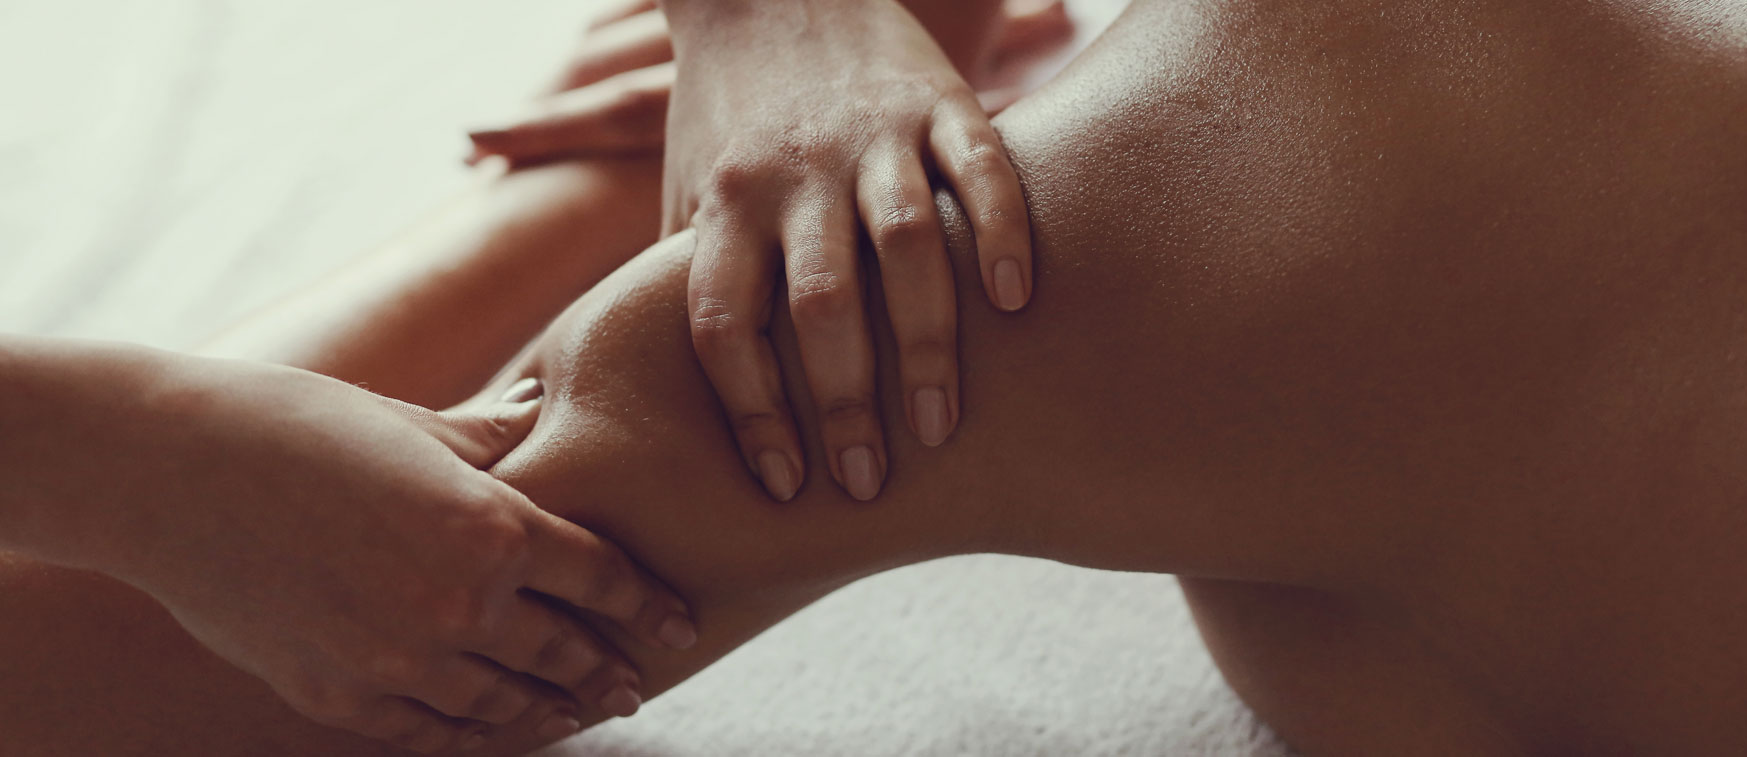 Person receiving massage